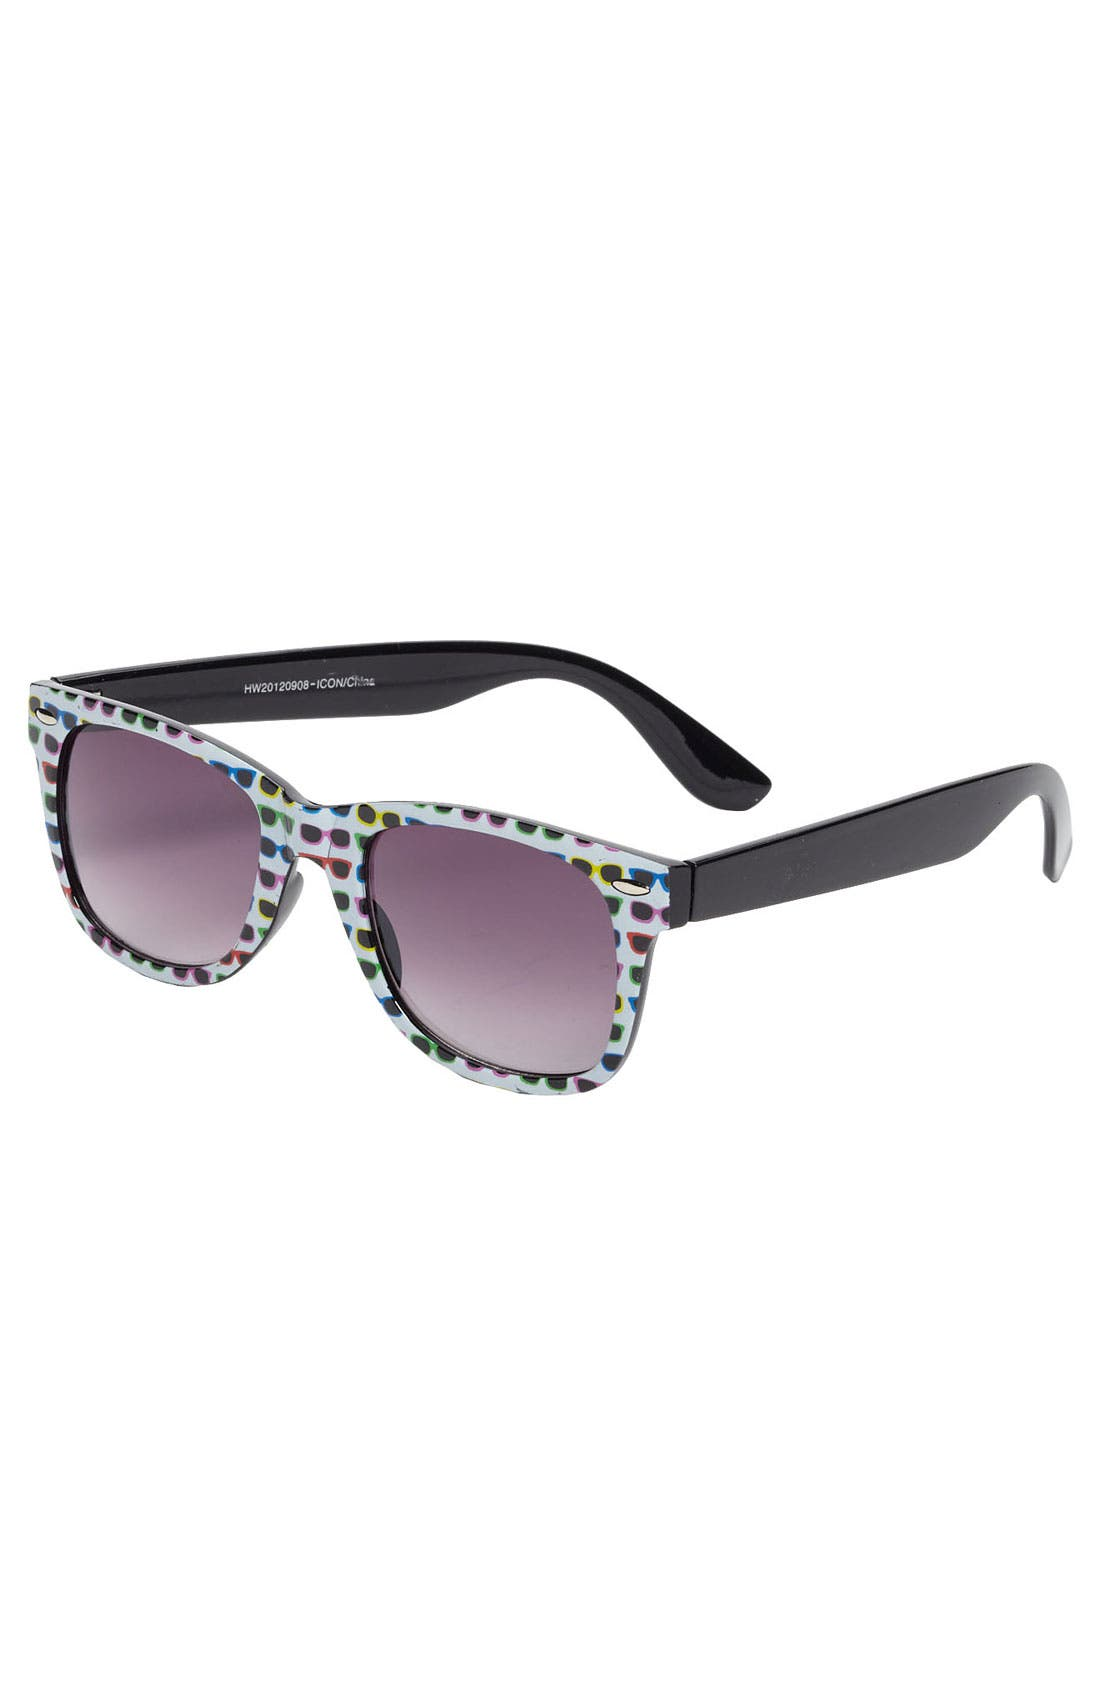 Alternate Image 1 Selected - Icon Eyewear Sunglasses (Girls)